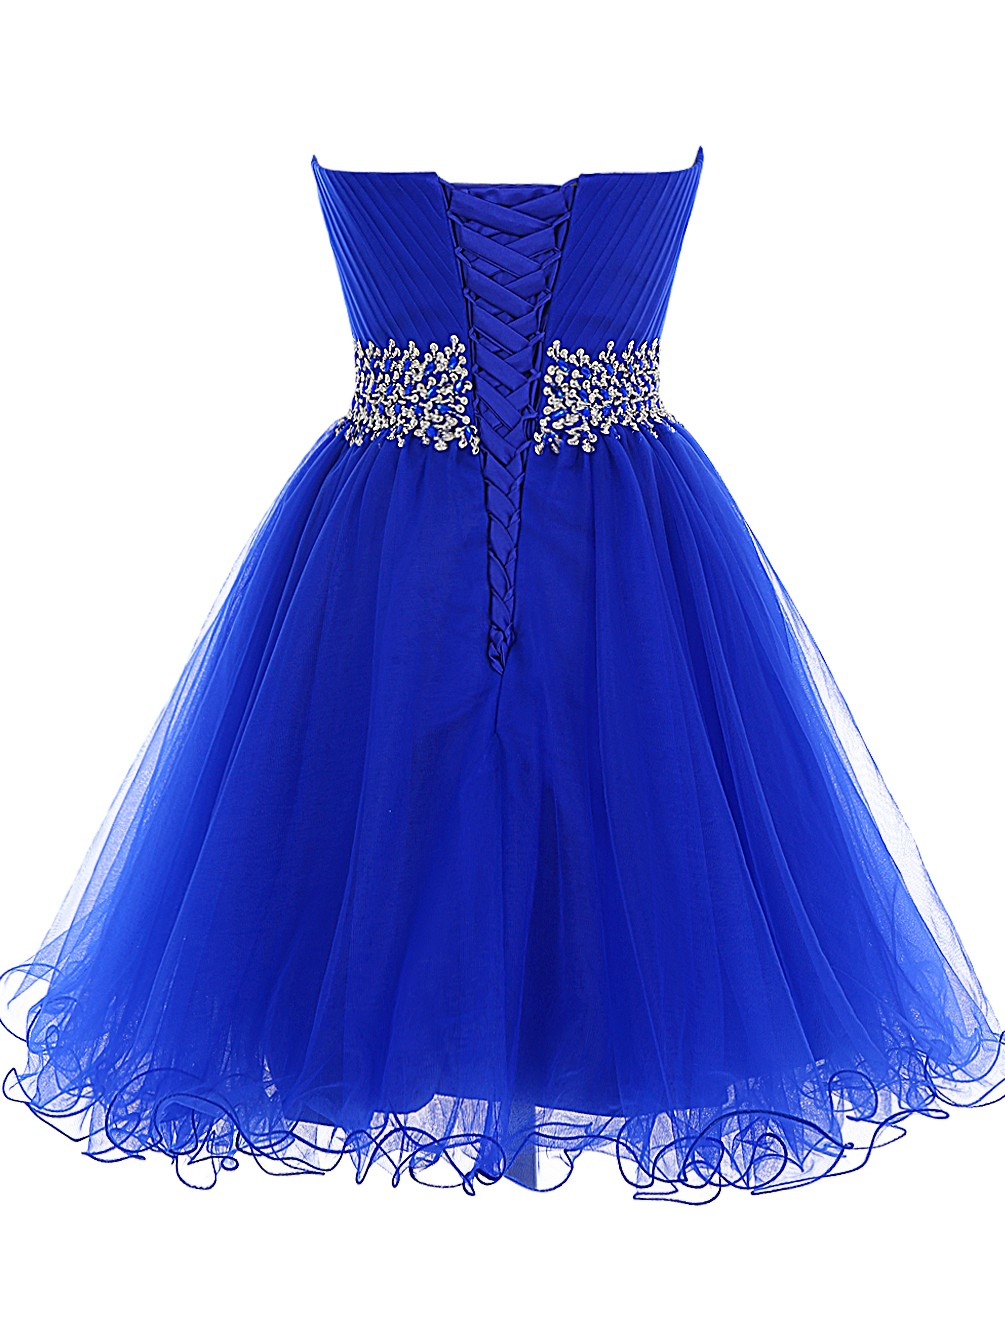 d2255da09d0 Royal Blue Sequin Short Prom Dress - Data Dynamic AG